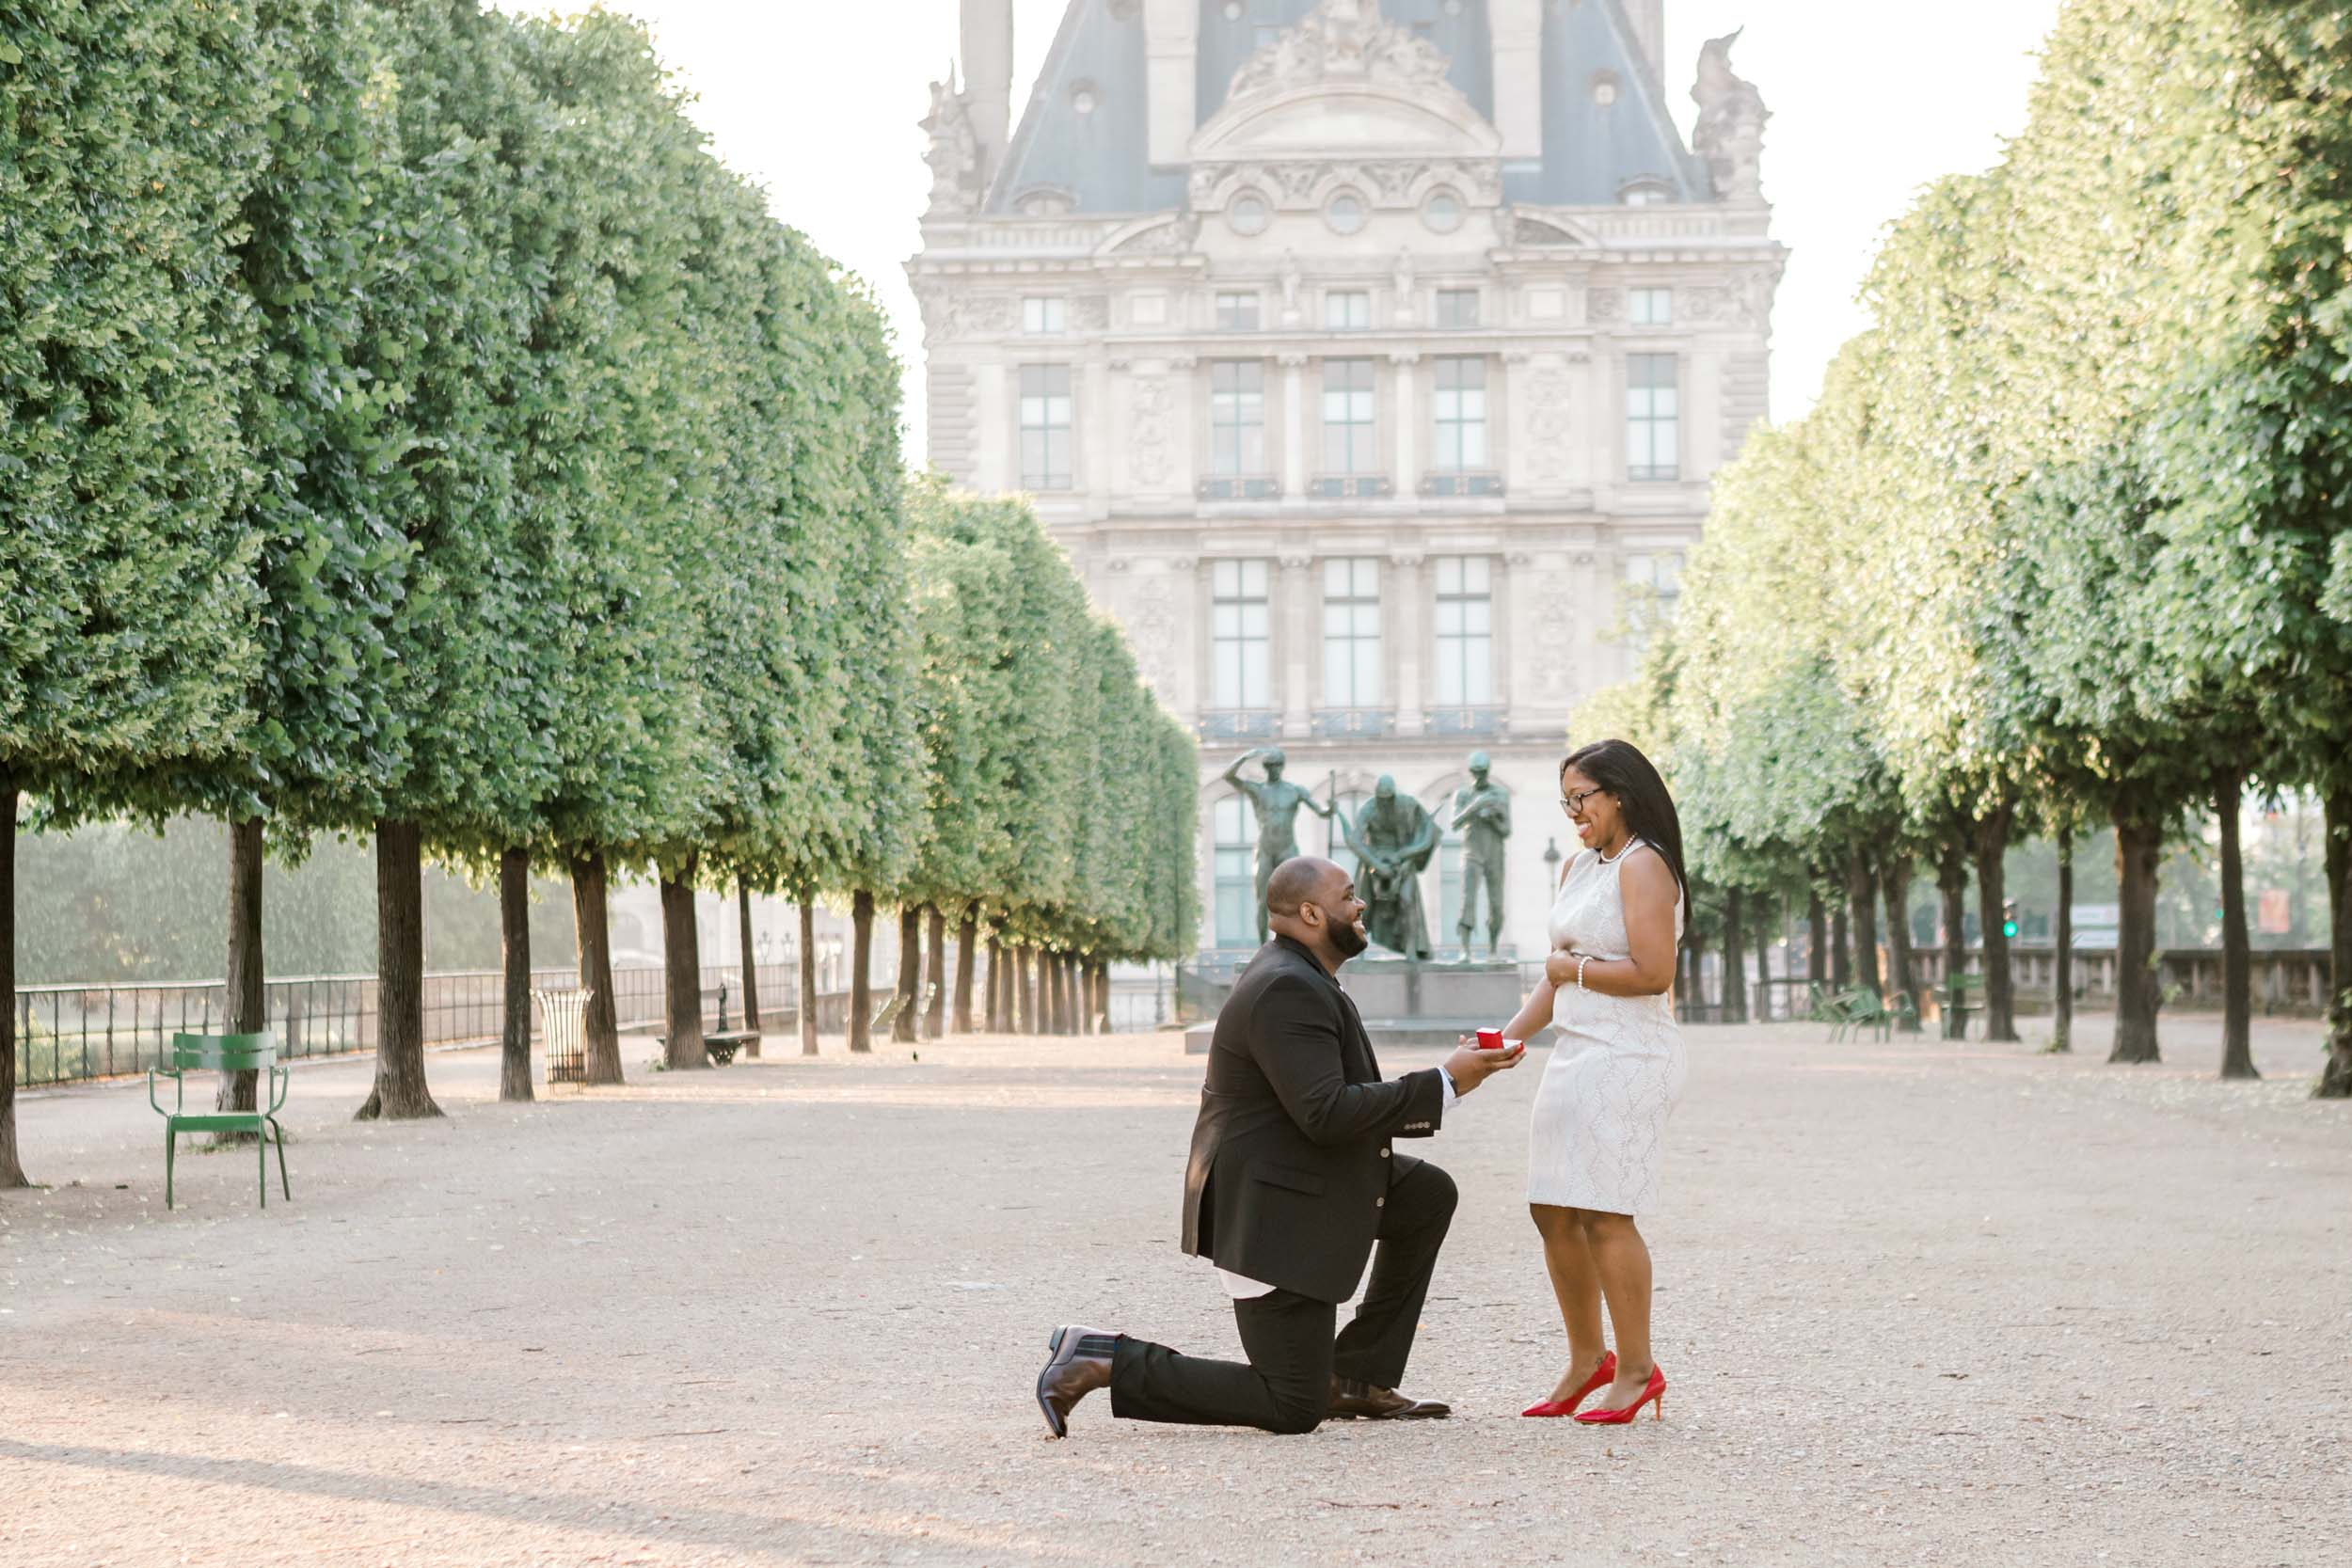 A Paris Proposal Ten Years Down the Road